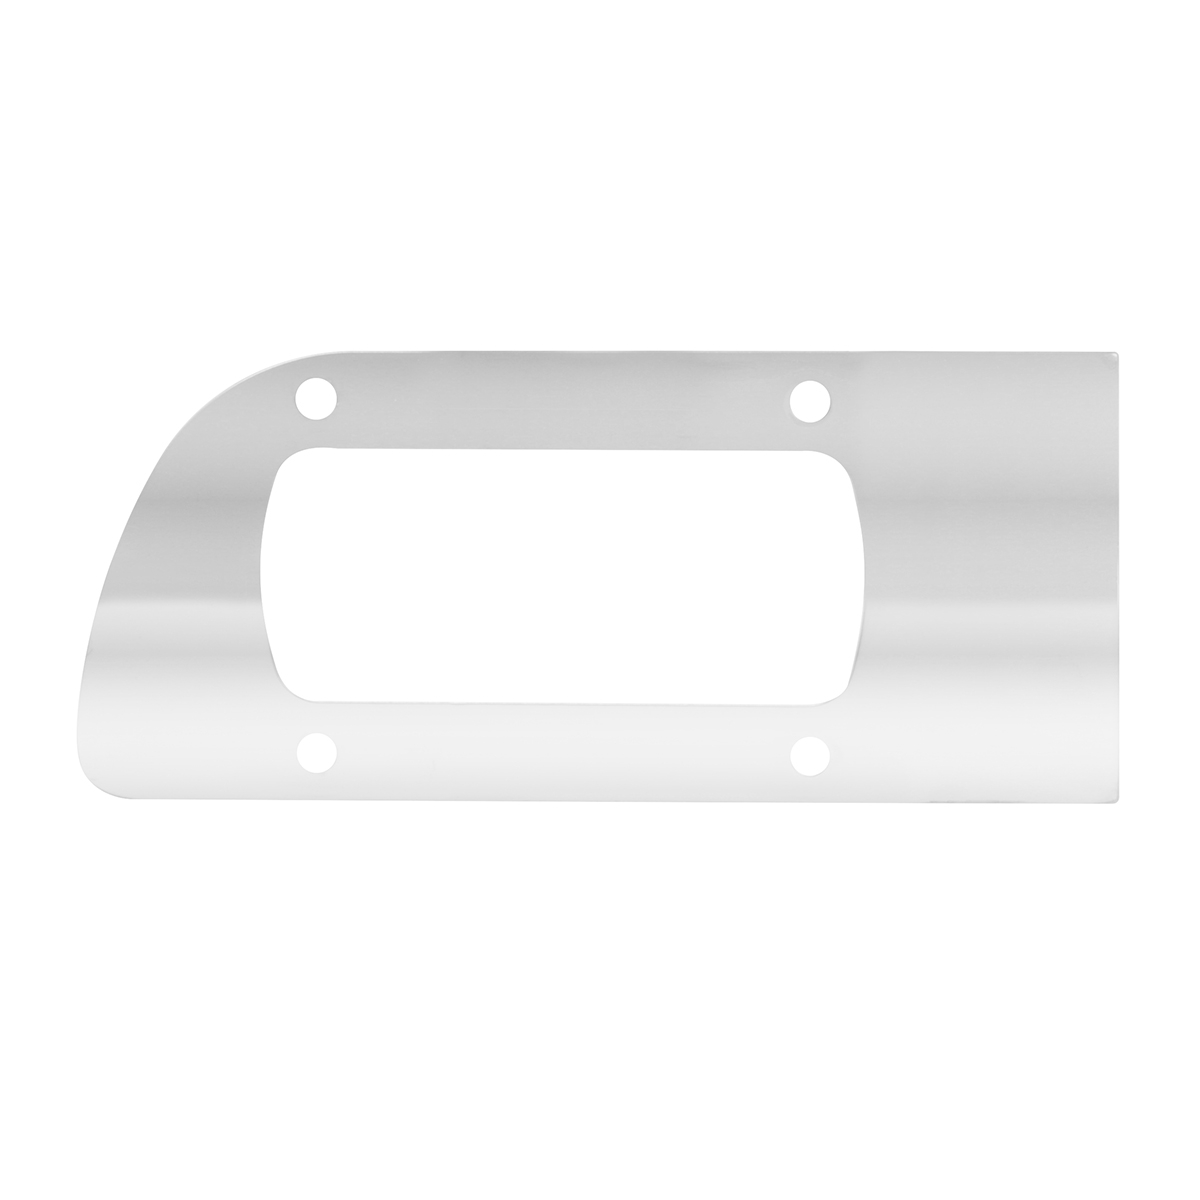 66982 Stainless Steel Engine Diagnostic Panel Trim for Kenworth T2000